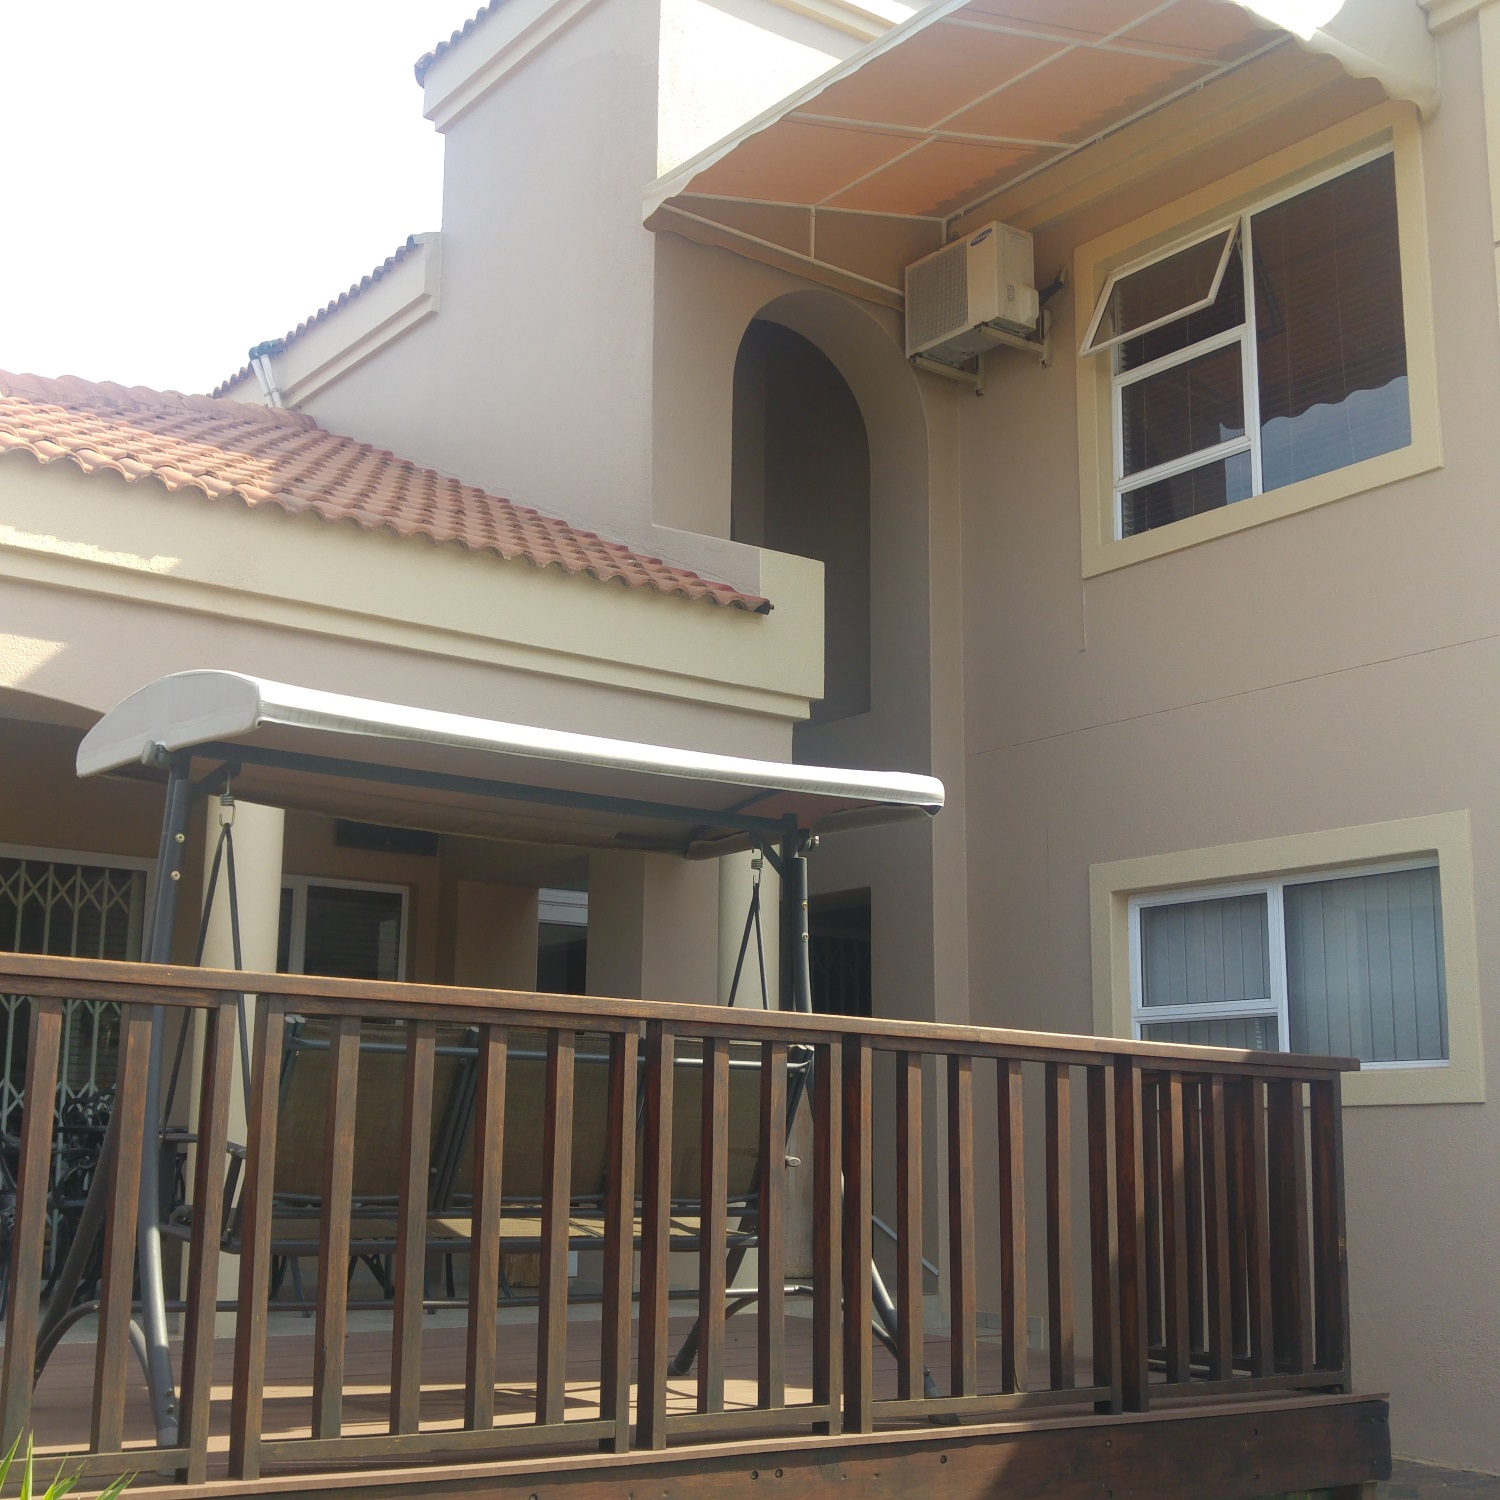 4 Bedroom Townhouse for sale in Glenvista Ext 6 ENT0001967 : photo#26